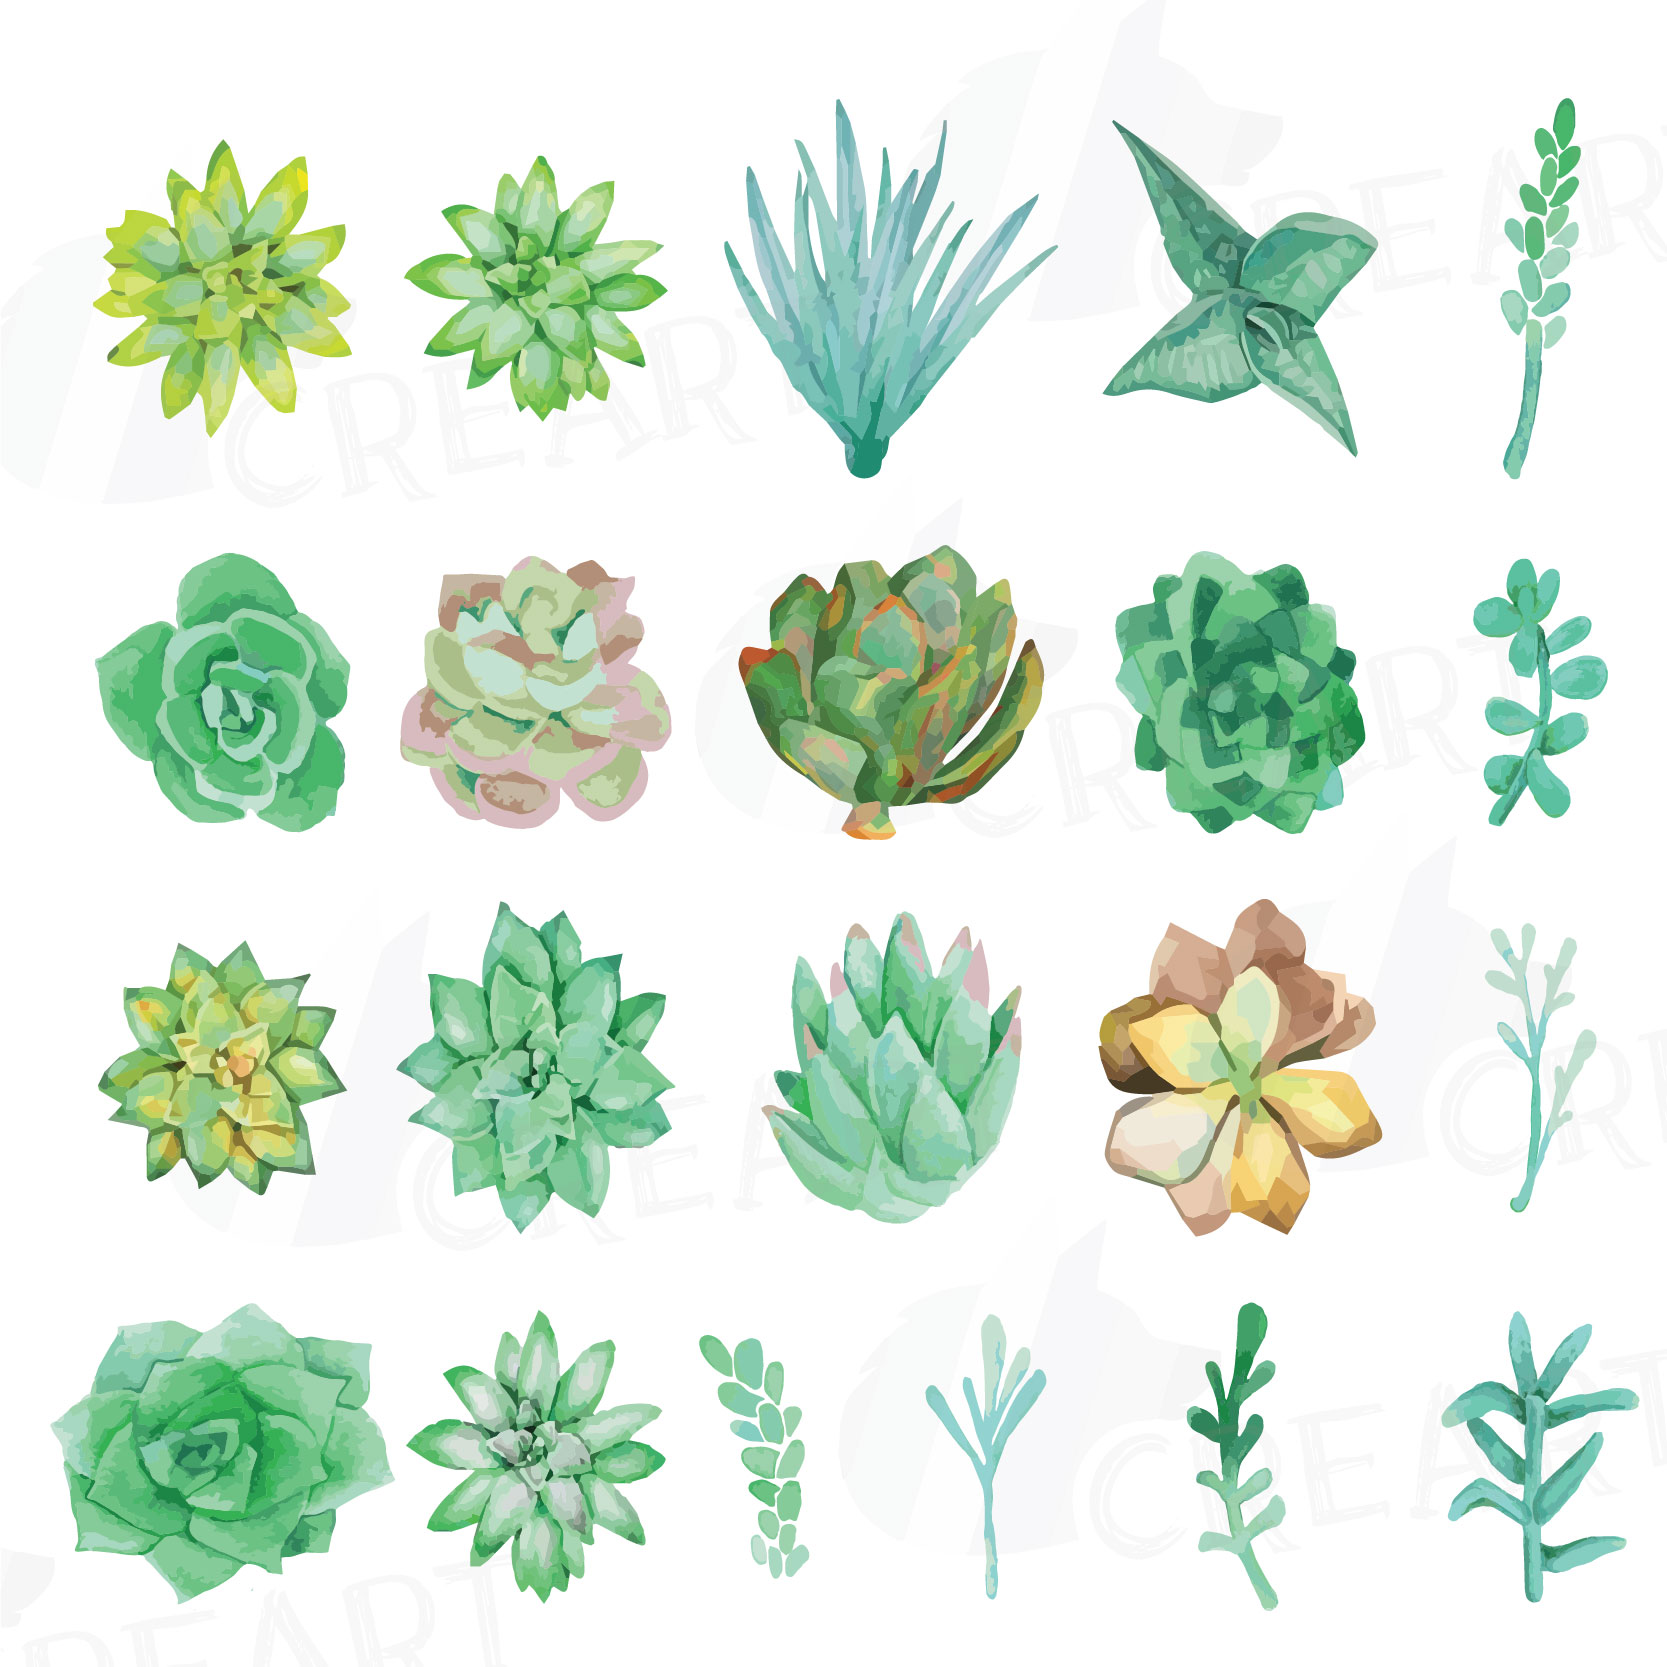 Watercolor succulents clipart png royalty free stock Watercolor succulent Clip art pack, Green succulents collection, Gallery  wall succulent for print u2013 Printable wall art png royalty free stock